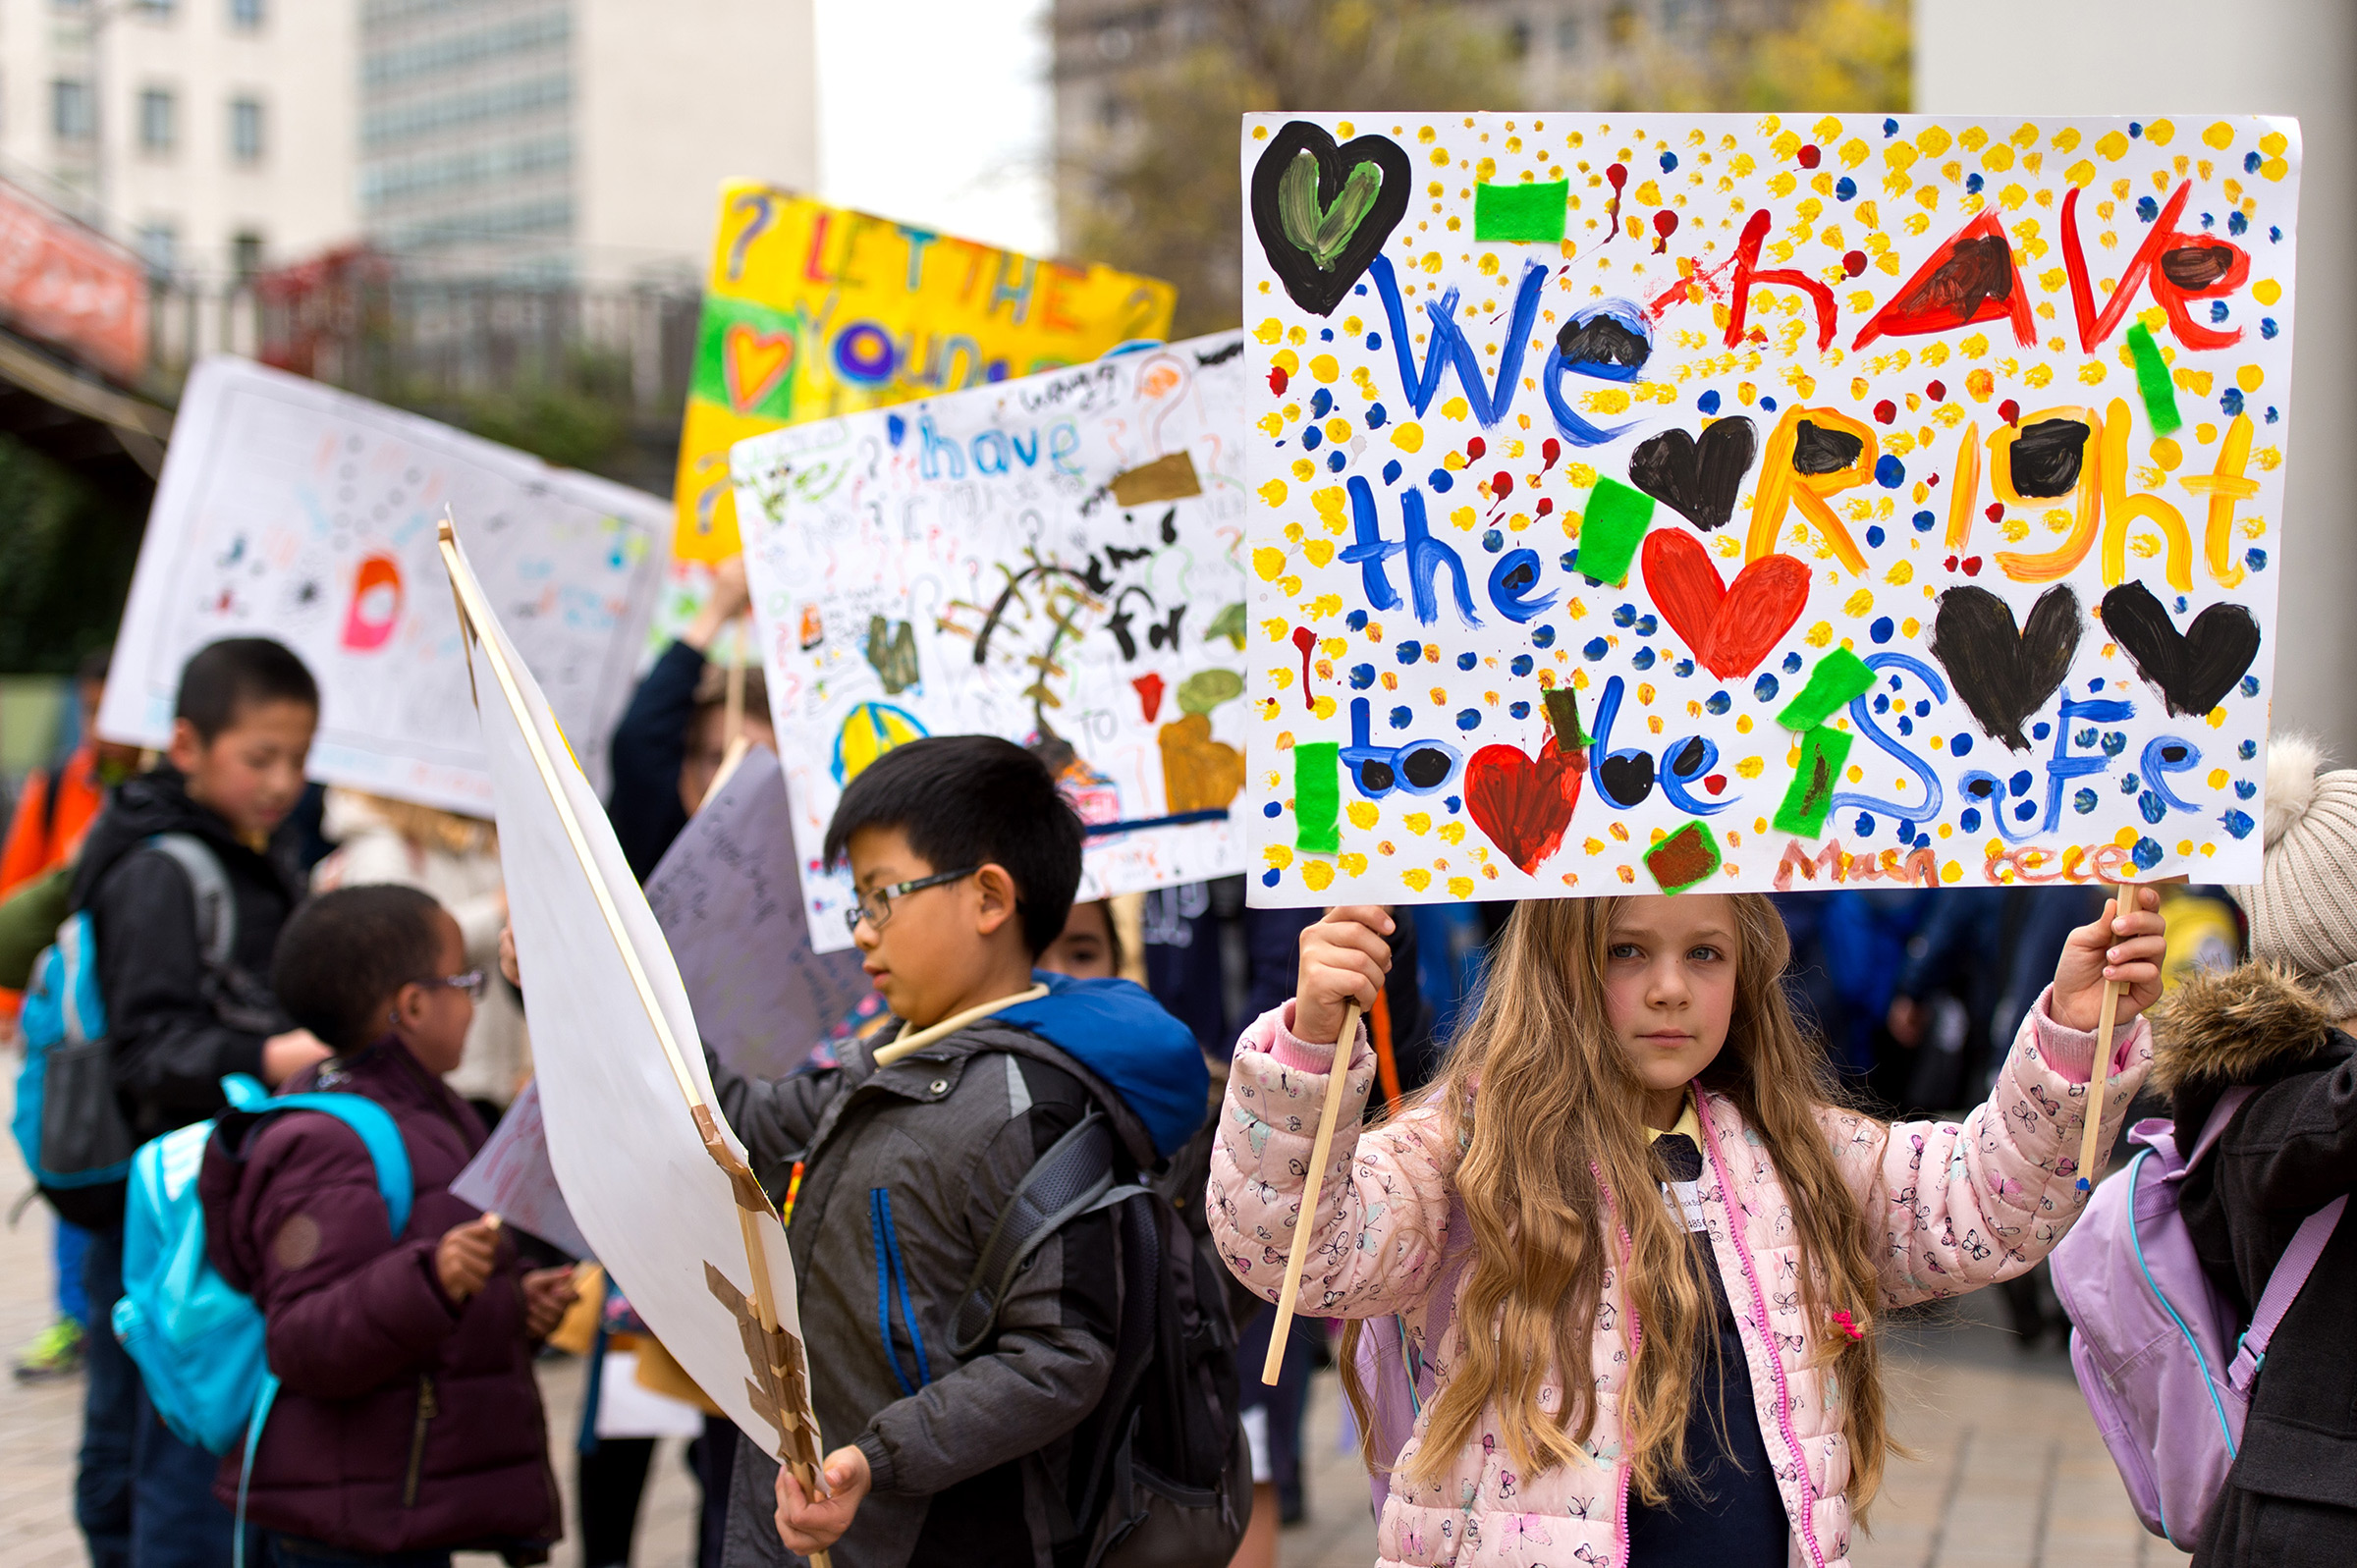 Children march around Southbank Centre in London to celebrate children and young people's rights on Oct. 22, 2015.